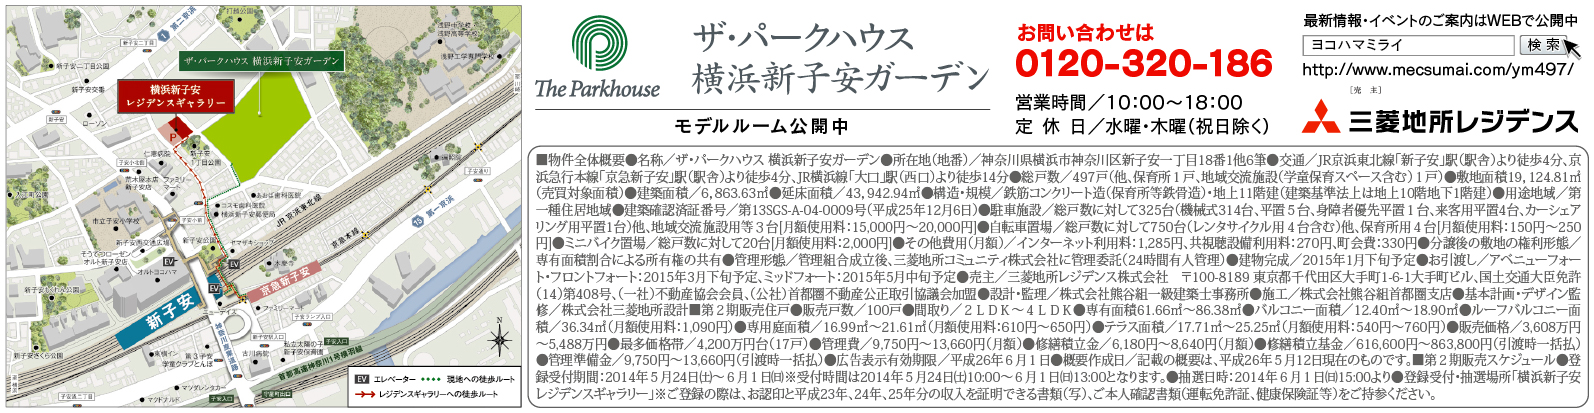 http://www.townnews.co.jp/0117/images/parkhouse_0515.jpg